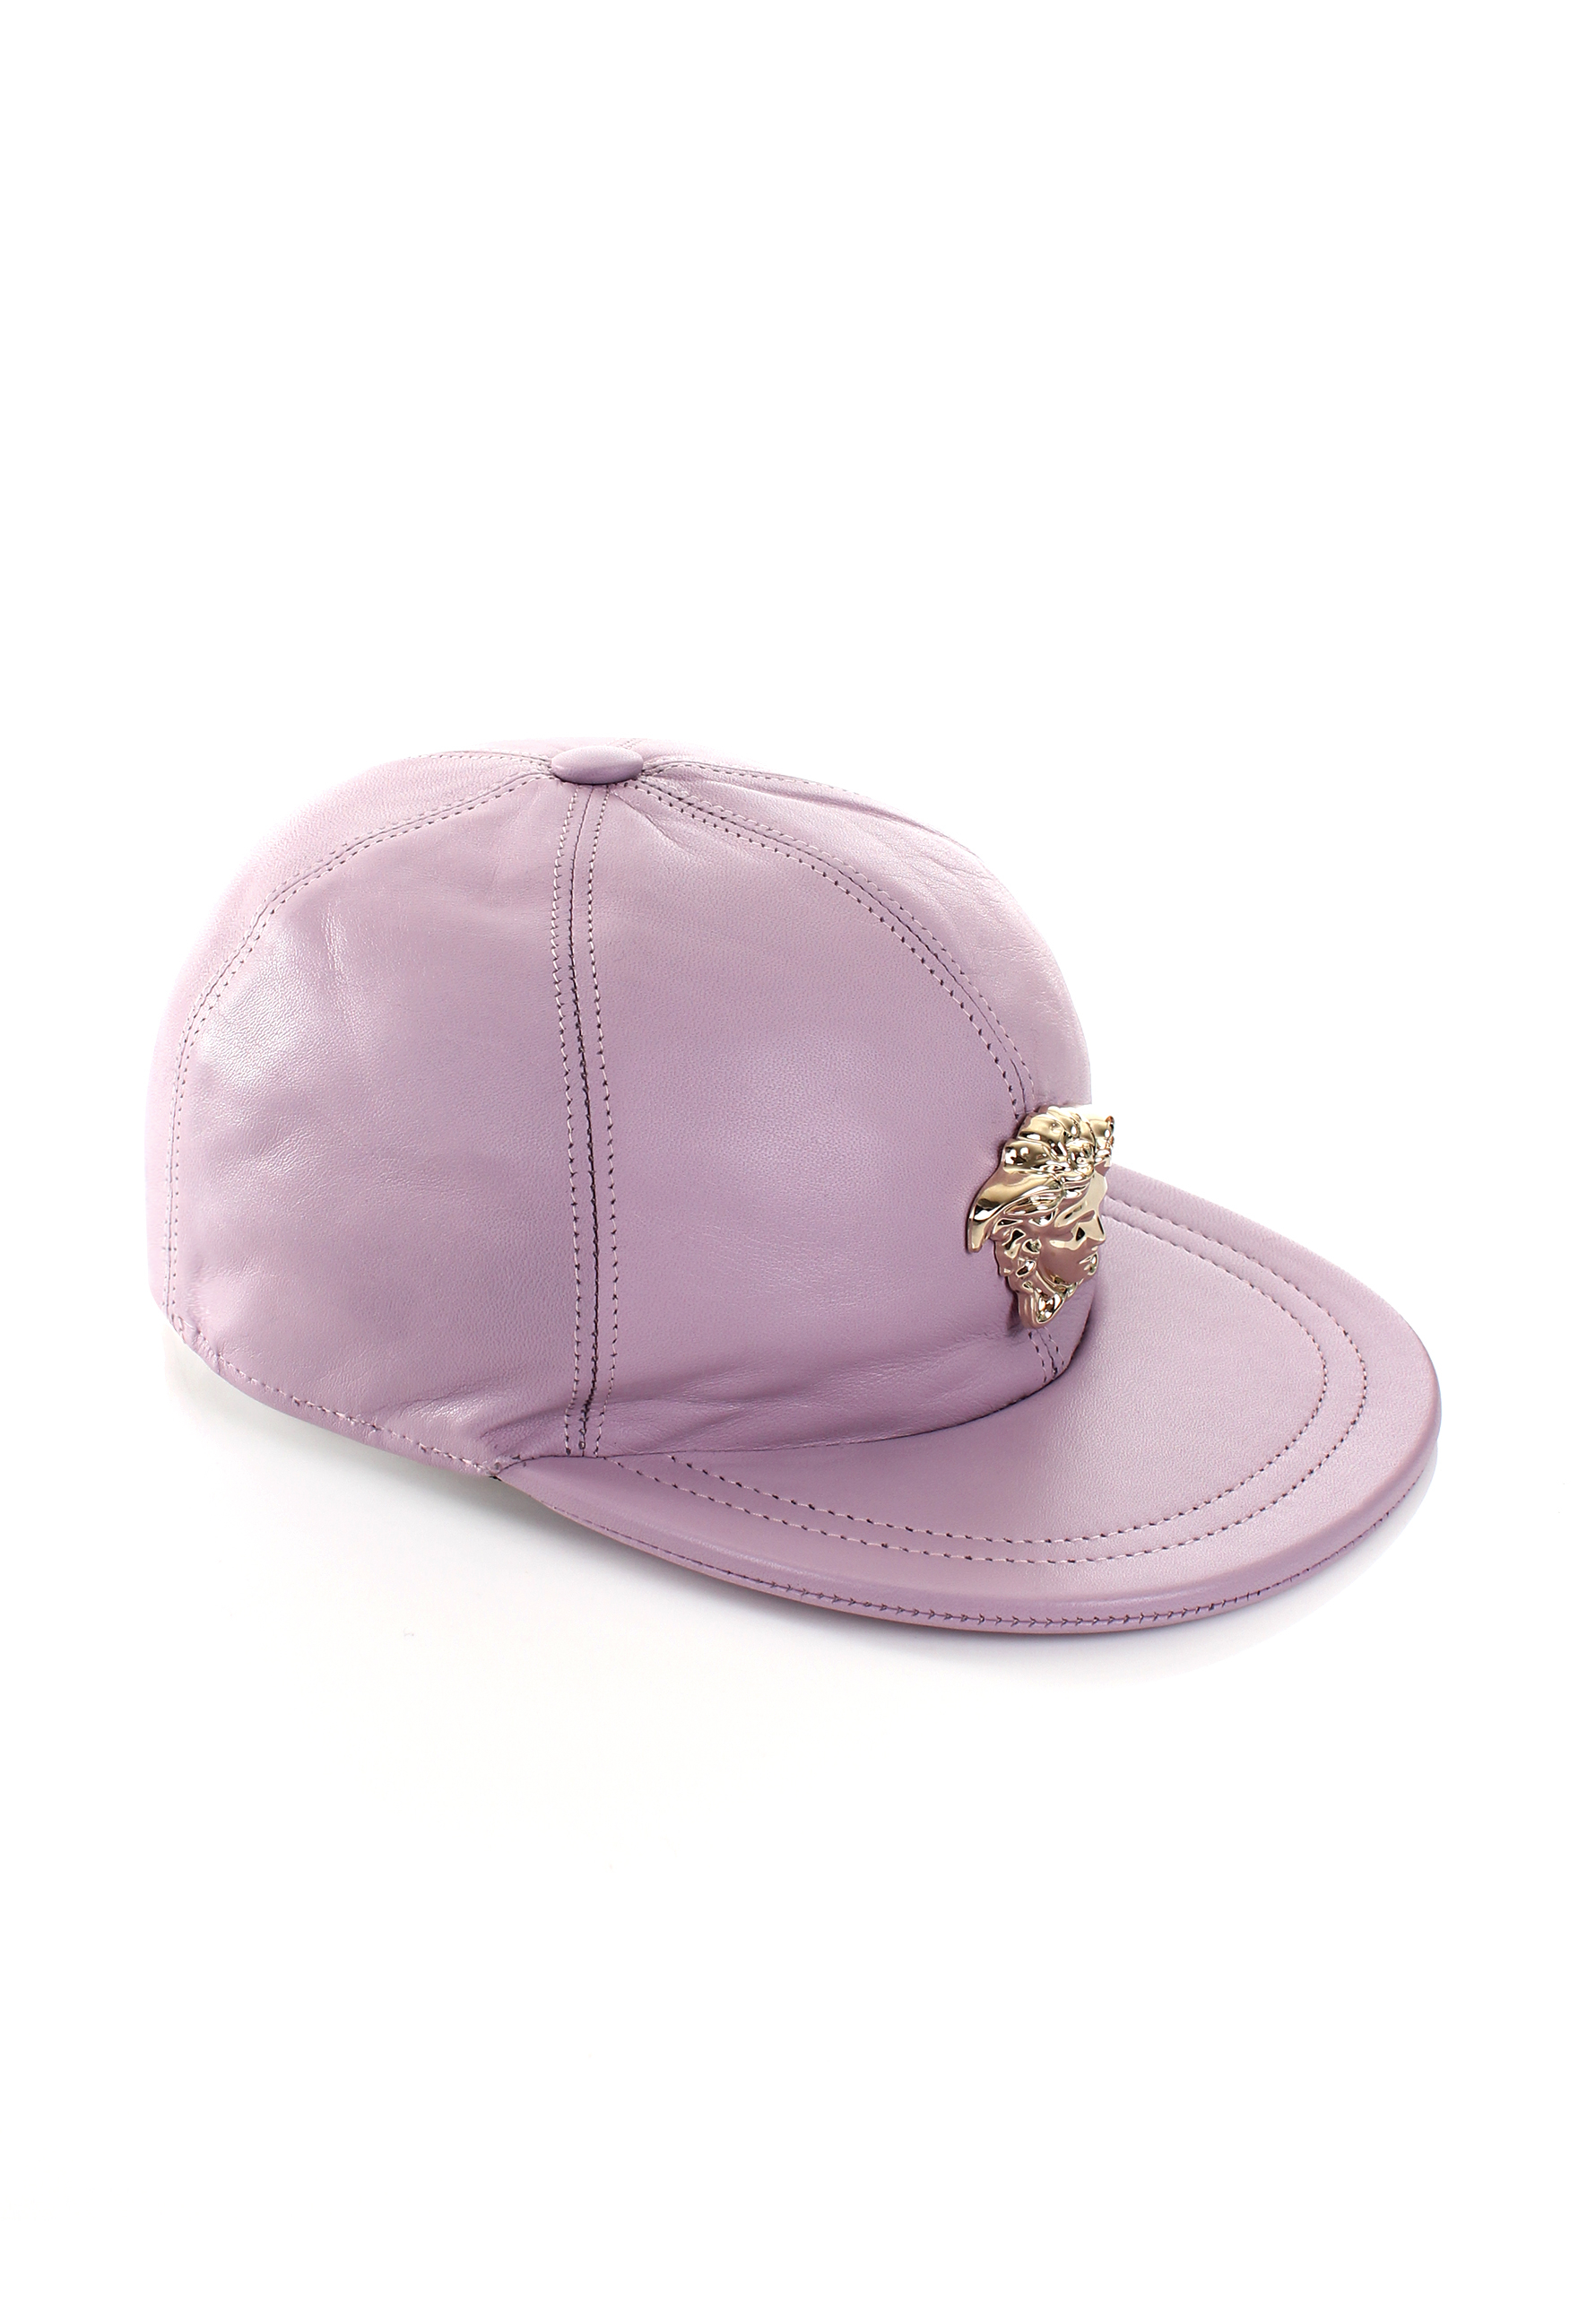 e0e7947f1 Versace Gold Medusa Leather Cap Pink in Pink - Lyst